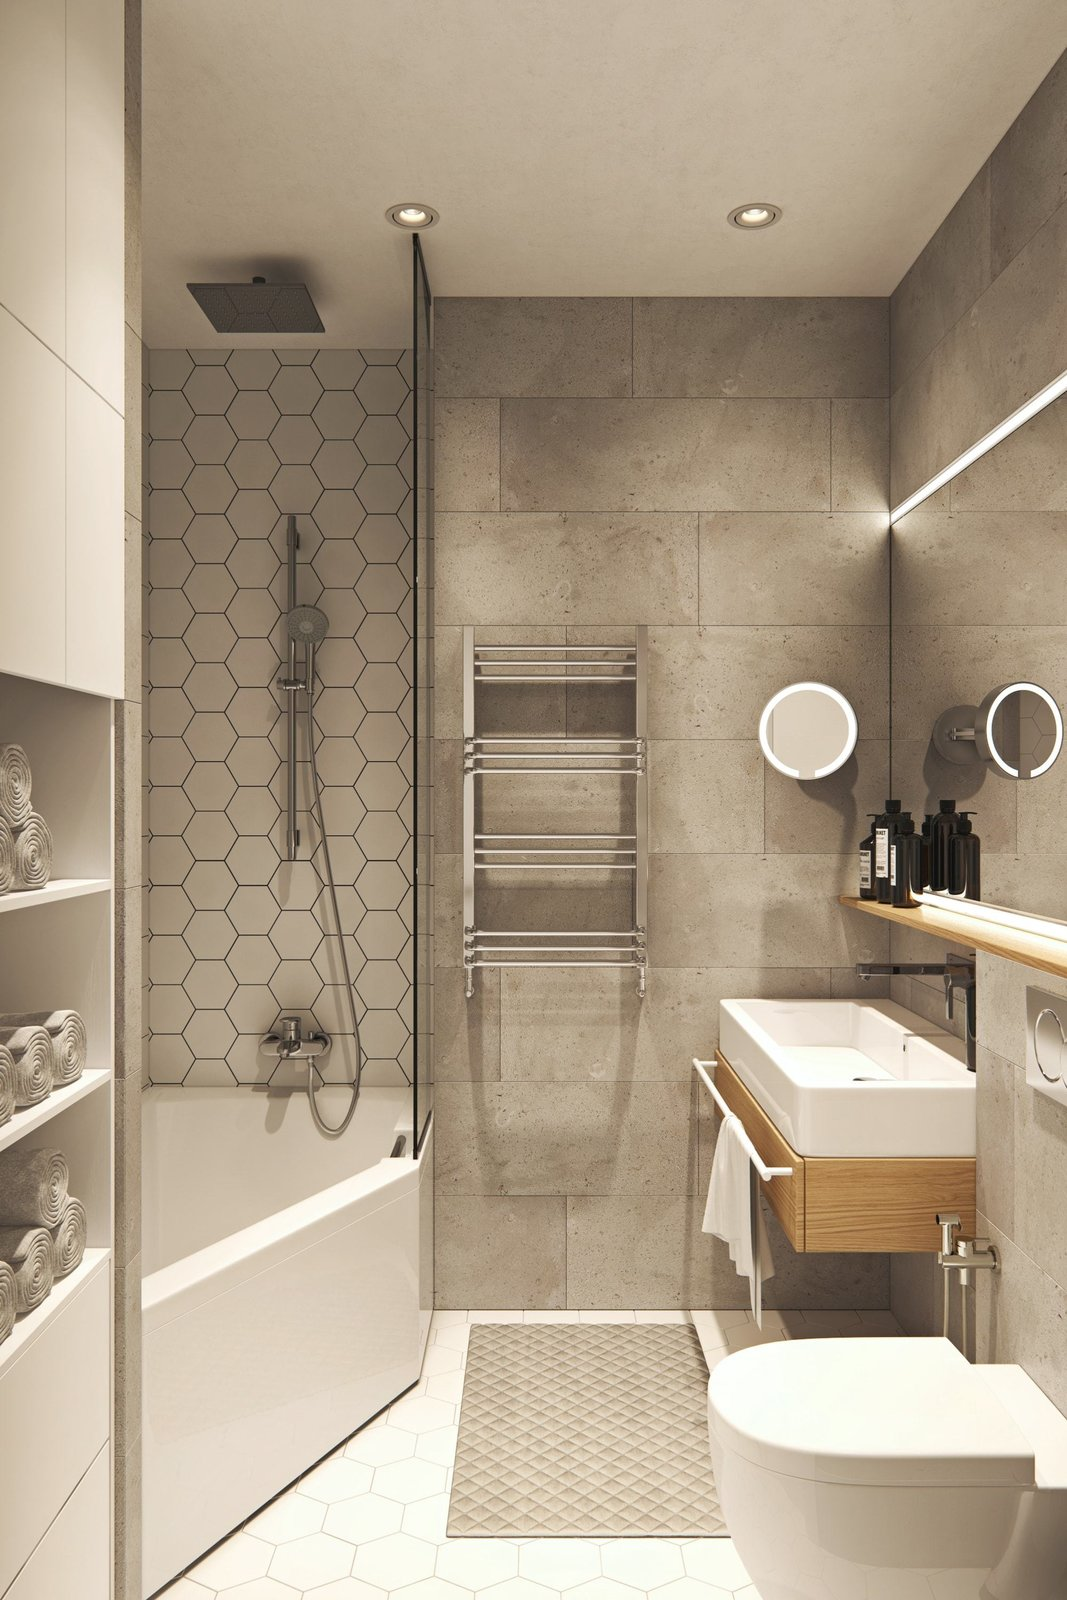 Bath Room  Interior Design Project in Contemporary Style by Geometrium